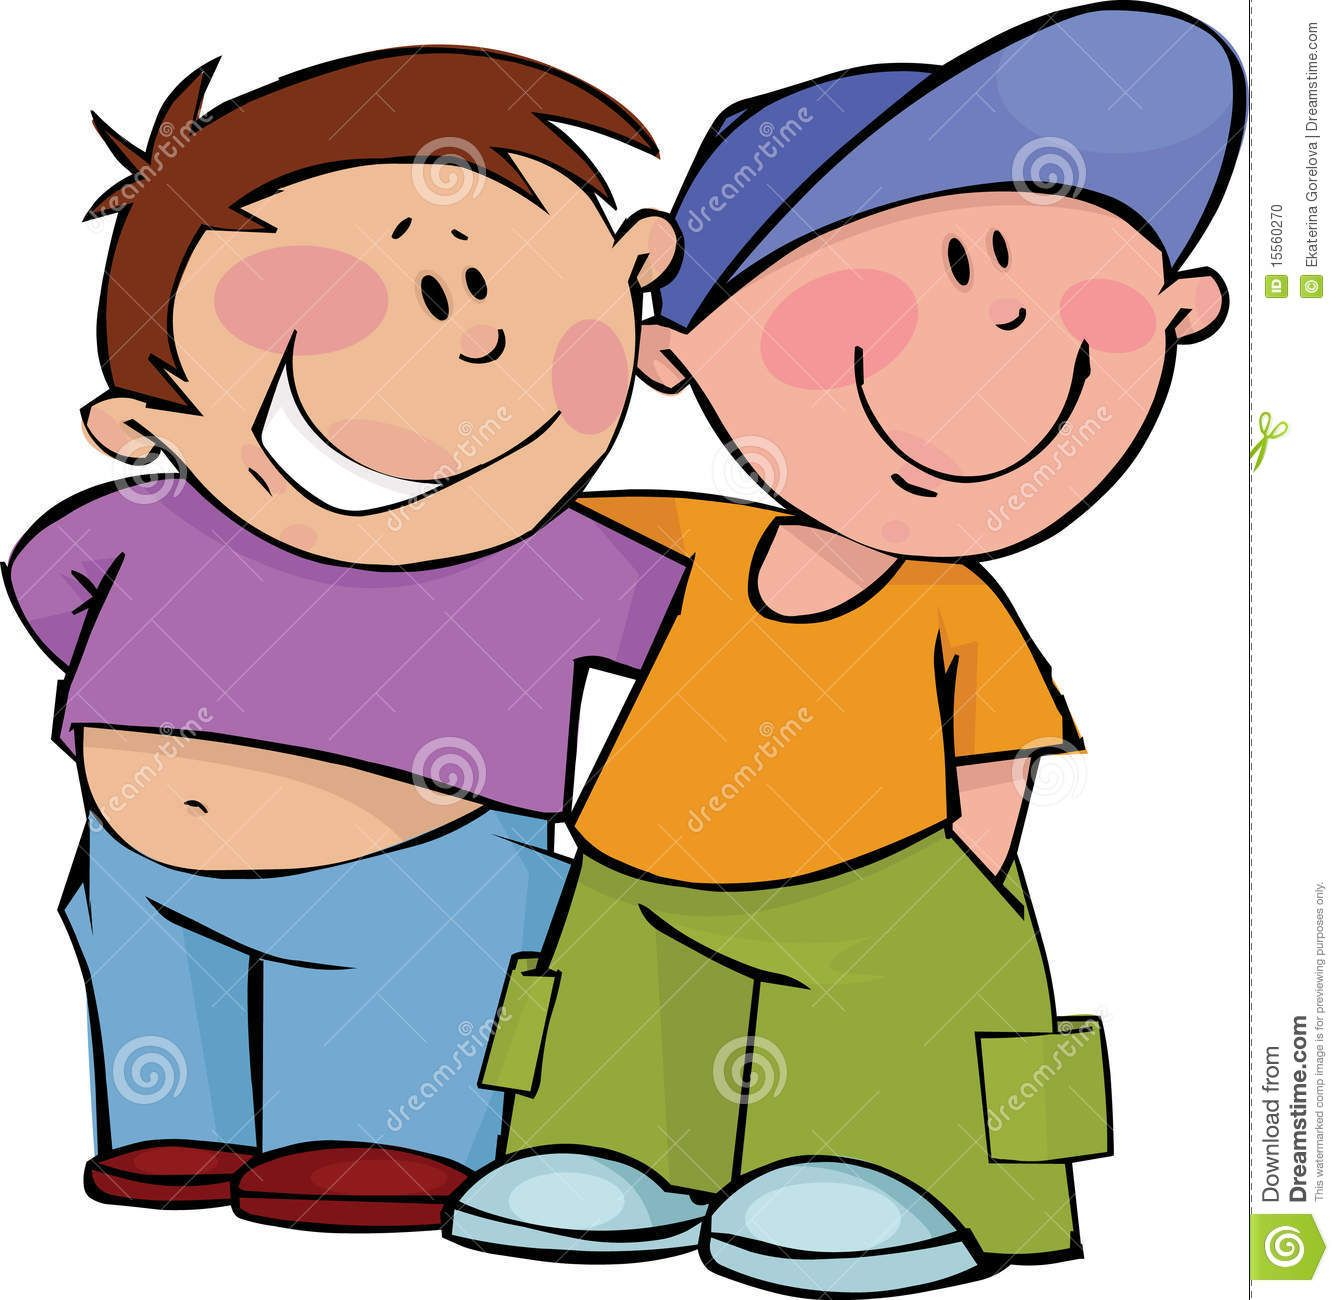 medium resolution of clipart friends two funny boys in a friendly hug